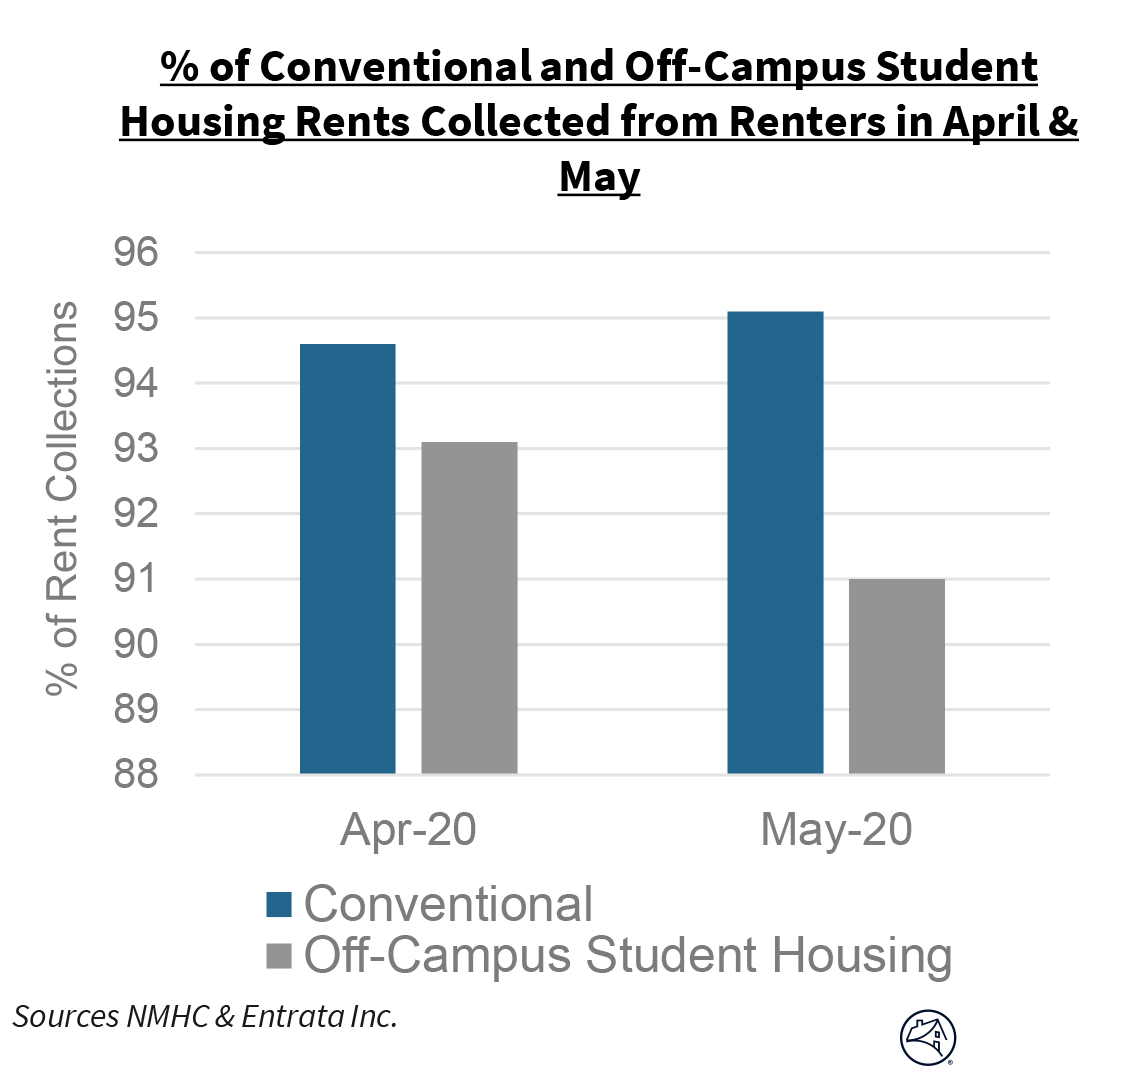 % of Conventional and Off-Campus Student Housing Rents Collected from Renters in April & May